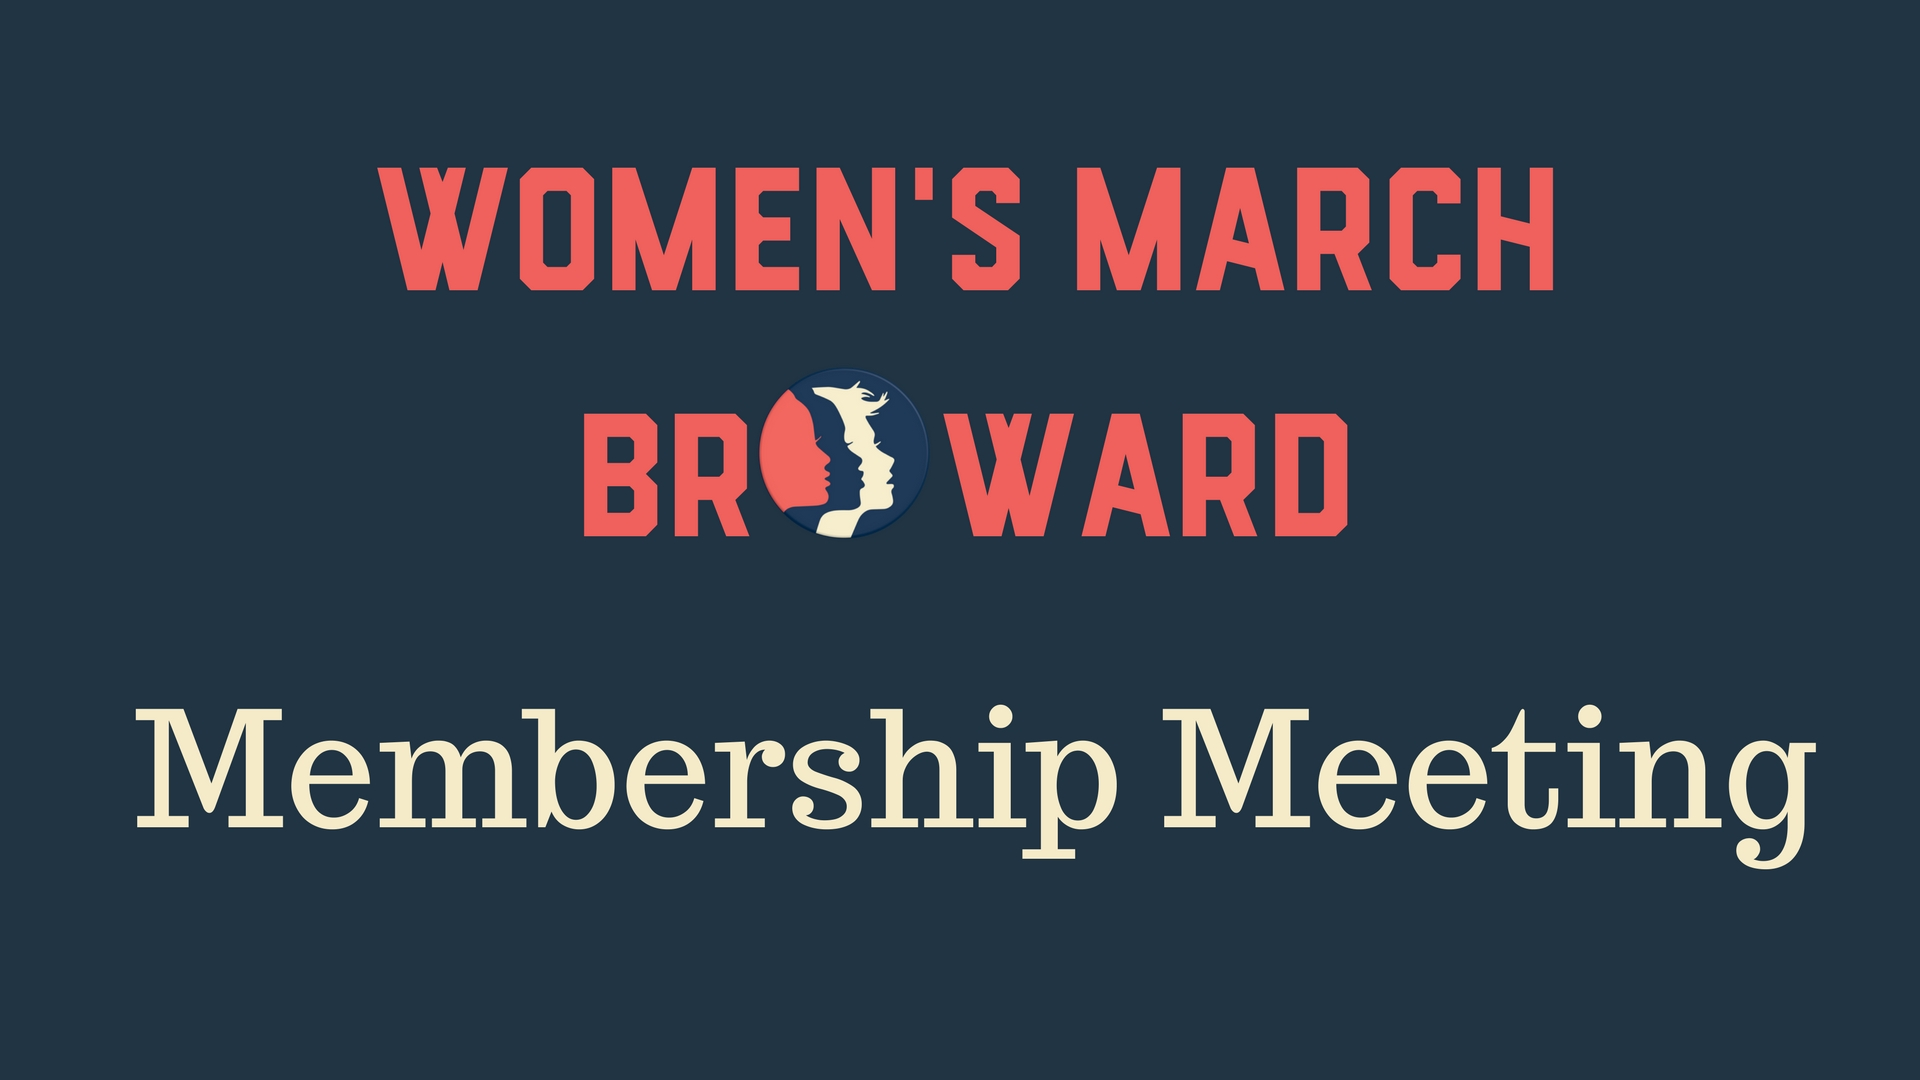 6-14-18: Membership Meeting - Please join Women's March Broward at our Membership Meeting where we will be hearing the Broward County Supervisor of Elections Outreach office. We will be informed on the election process in Broward County, voter education, and outreach in the community. We will update the event with more speakers shortly.We will also be updating everyone on our current Power to the Polls work in Broward County. Come out and learn how you can join us in registering voters, researching local, state, and national candidates, and all the 2018 legislative ballot items. Please RSVP as soon as you can so we can ask the venue to have the appropriate amount of staff working the event. :)We look forward to seeing you on June 14th!